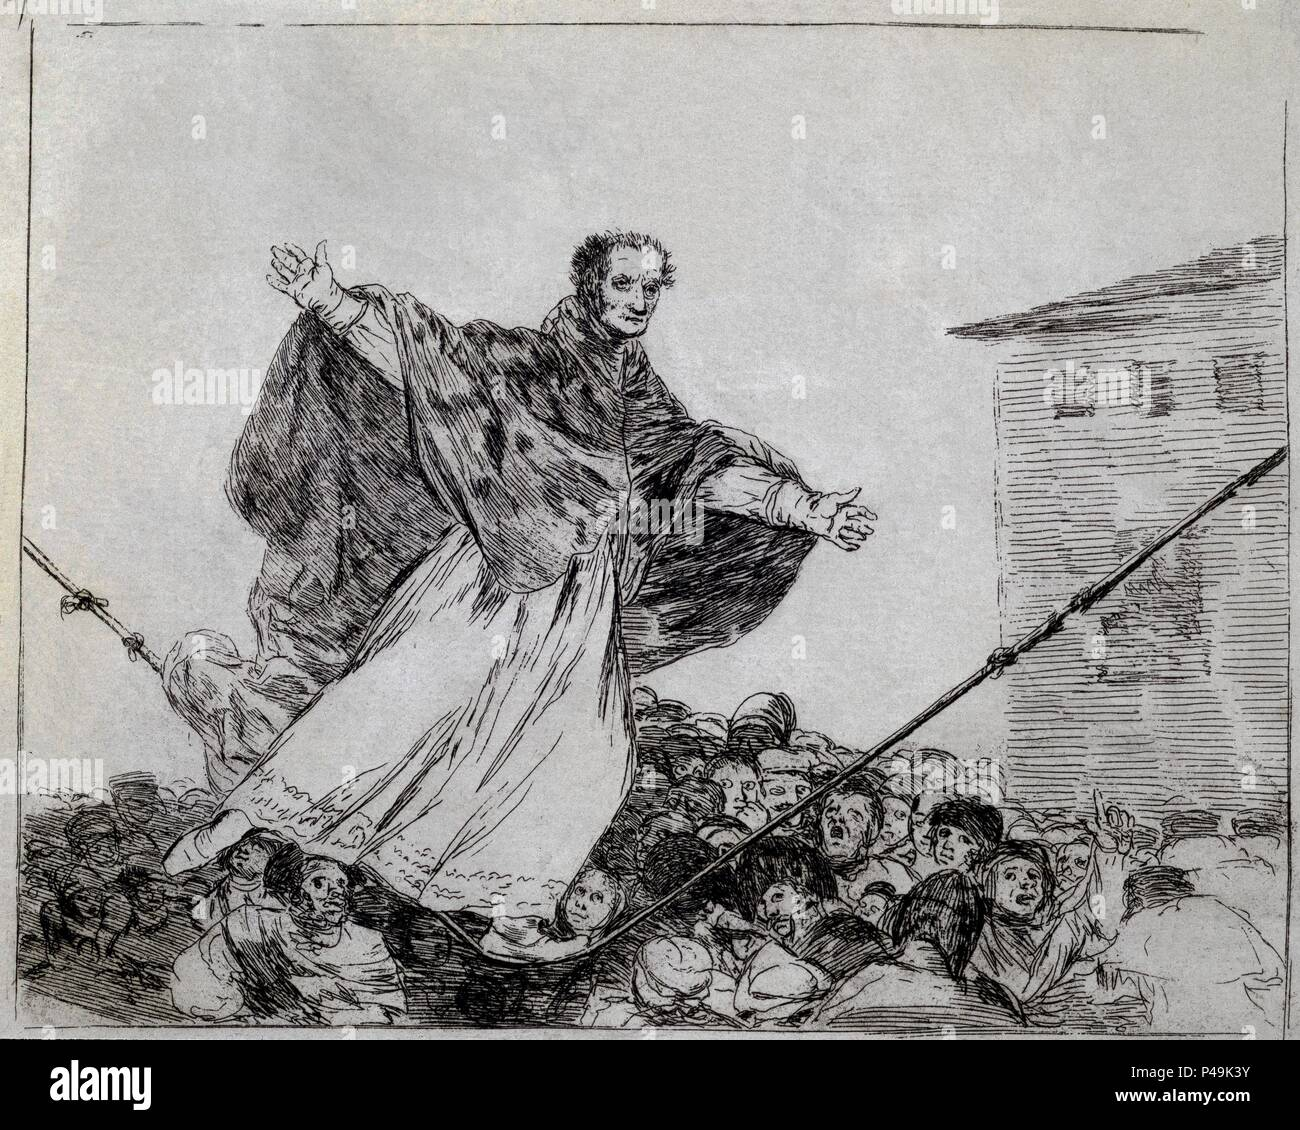 May the cord break, plate 77 of 'The Disasters of War' - 1810/14 - 17,8x22,1 cm - etching, lavis or burnished aquatint and burnisher. Author: Francisco de Goya (1746-1828). Location: MUSEUM OF FINE ARTS, BOSTON-MASSACHUSETTS. Also known as: DESASTRE Nº 77-QUE SE LE ROMPE LA CUERDA. - Stock Image